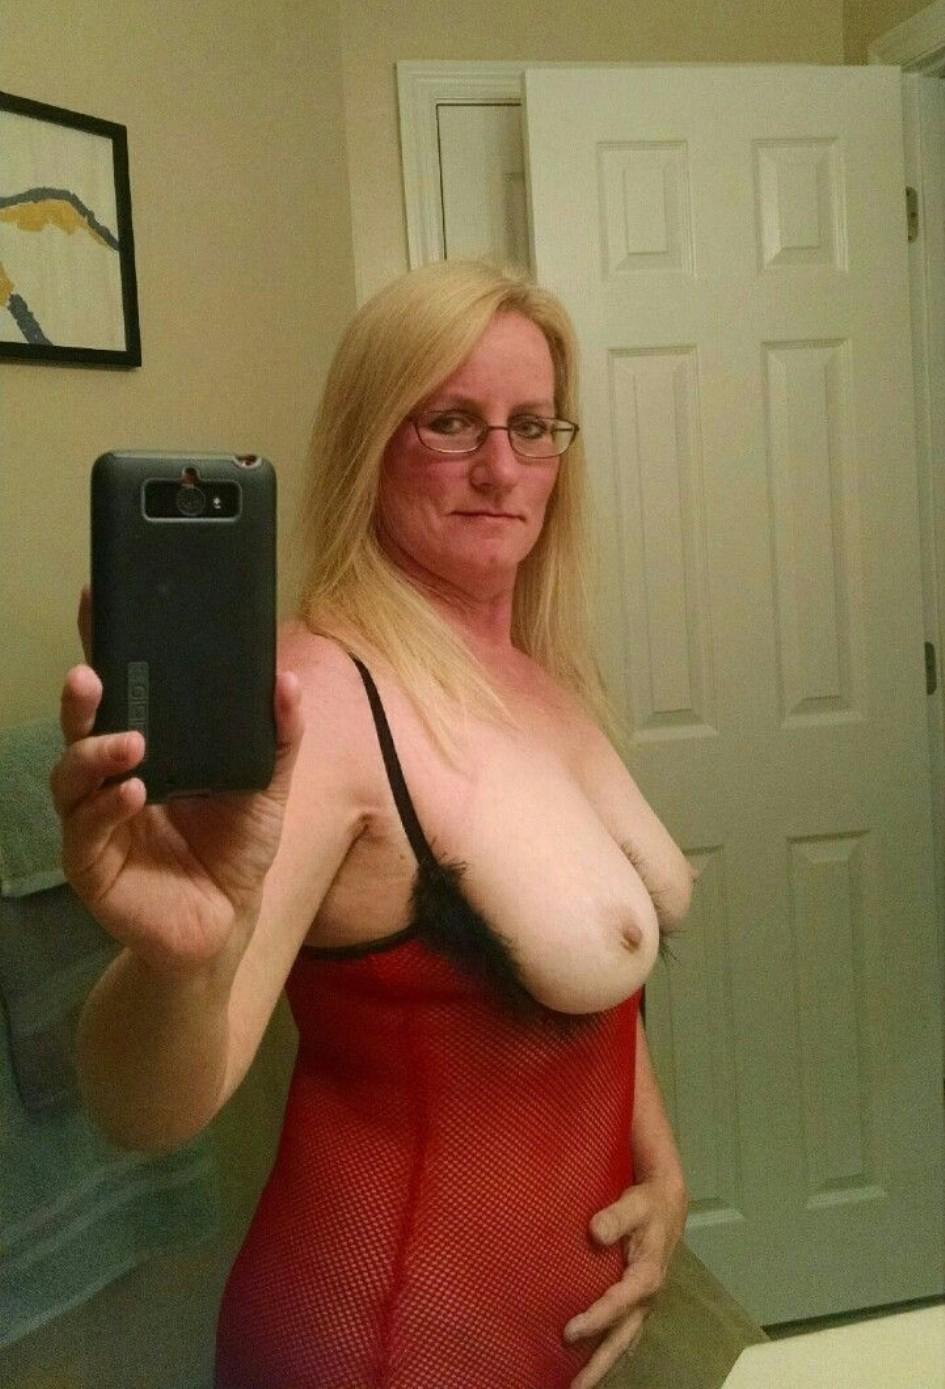 amateur mature nude selfies